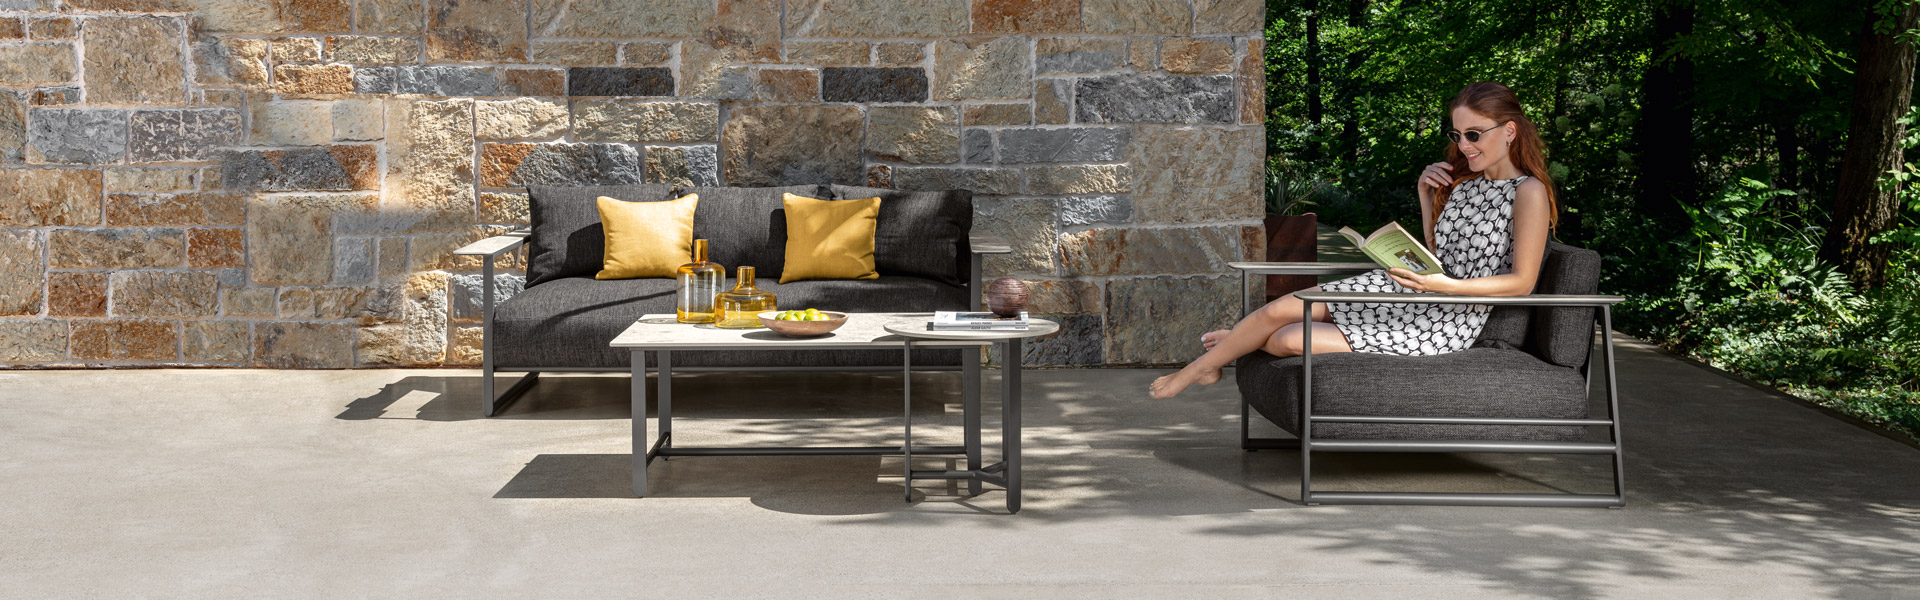 riviera outdoor collection